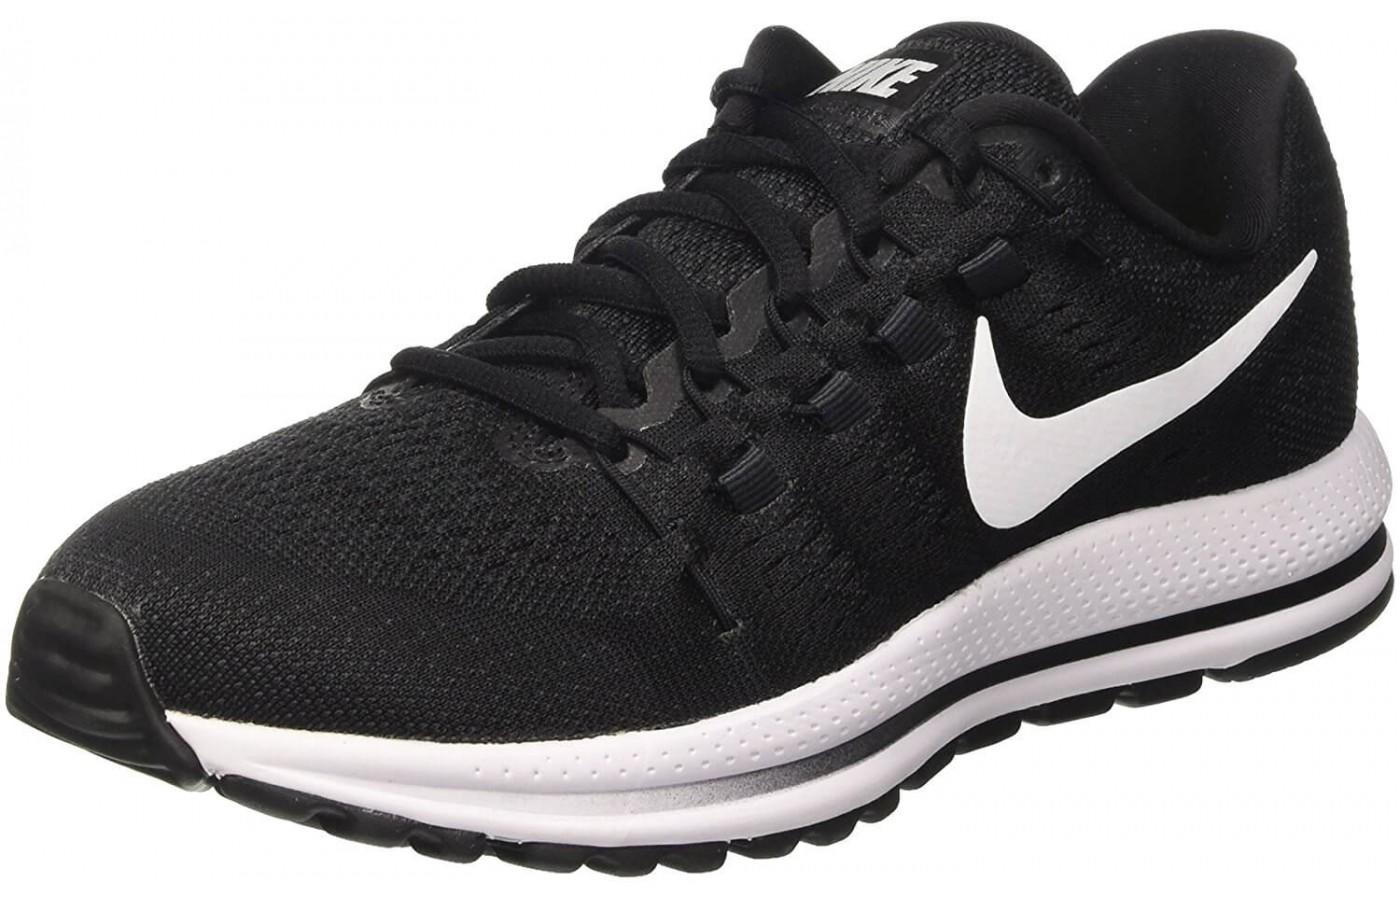 low priced 74e3c 7c4ba The Nike Air Zoom Vomero 12 shown from the front side ...